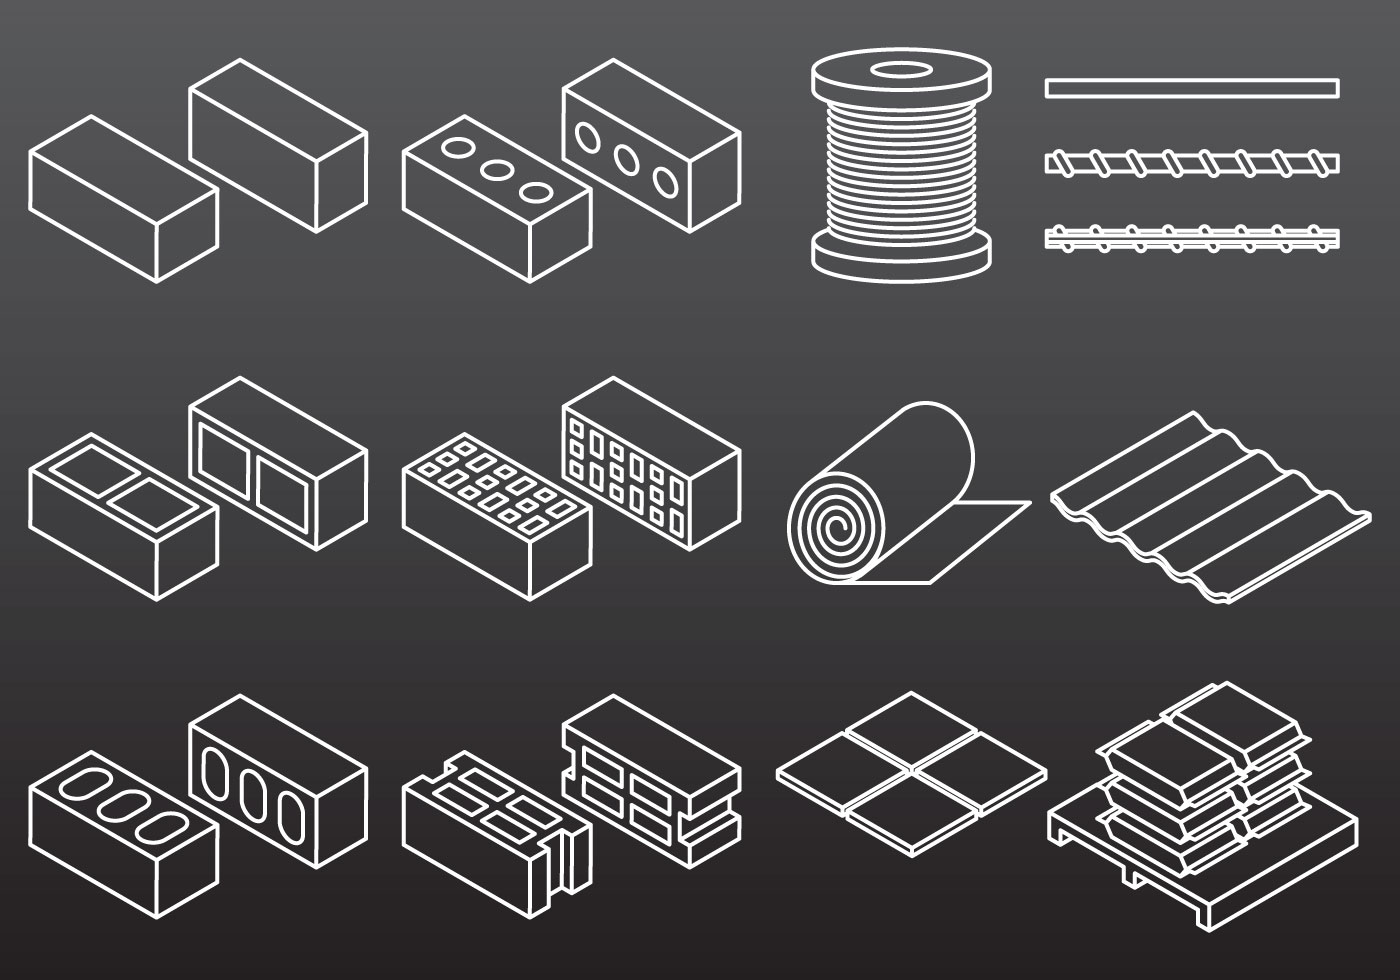 Construction material icons download free vector art - Material de construccion ...